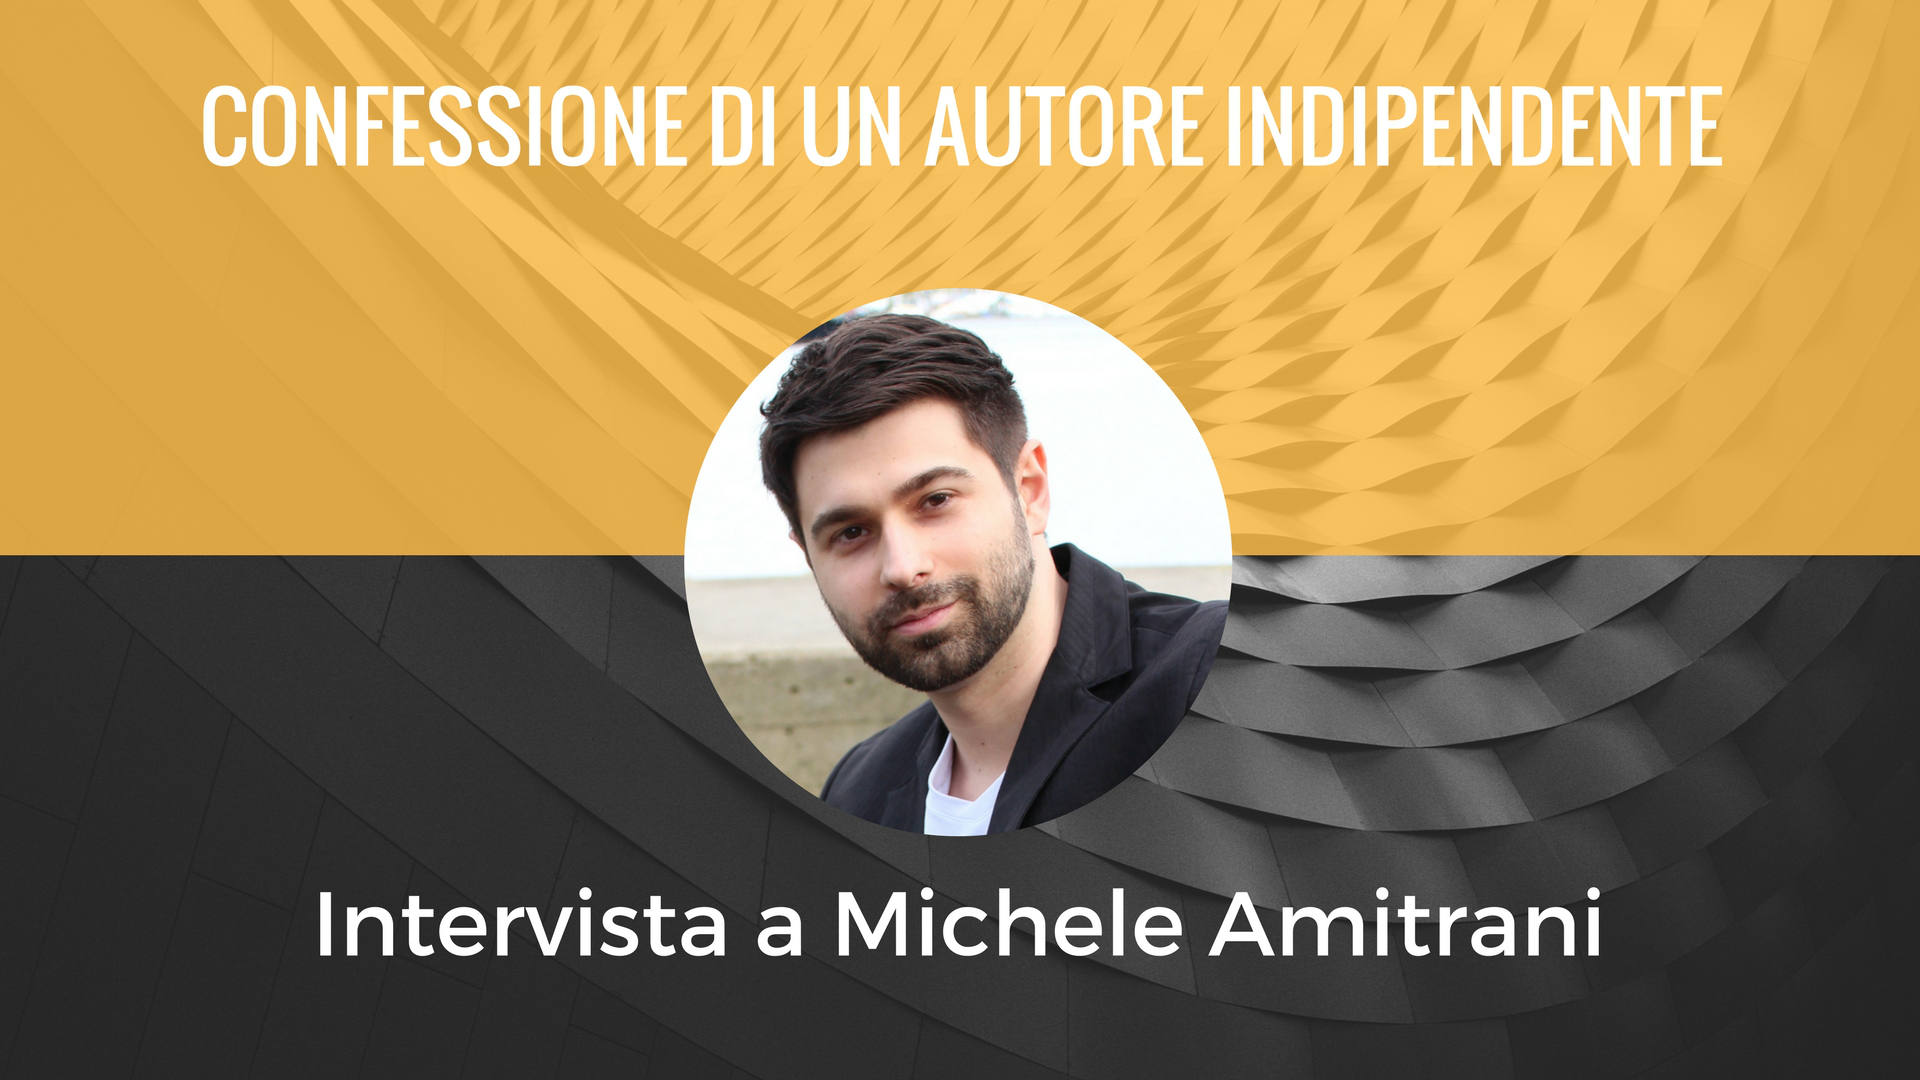 Intervista a Michele Amitrani